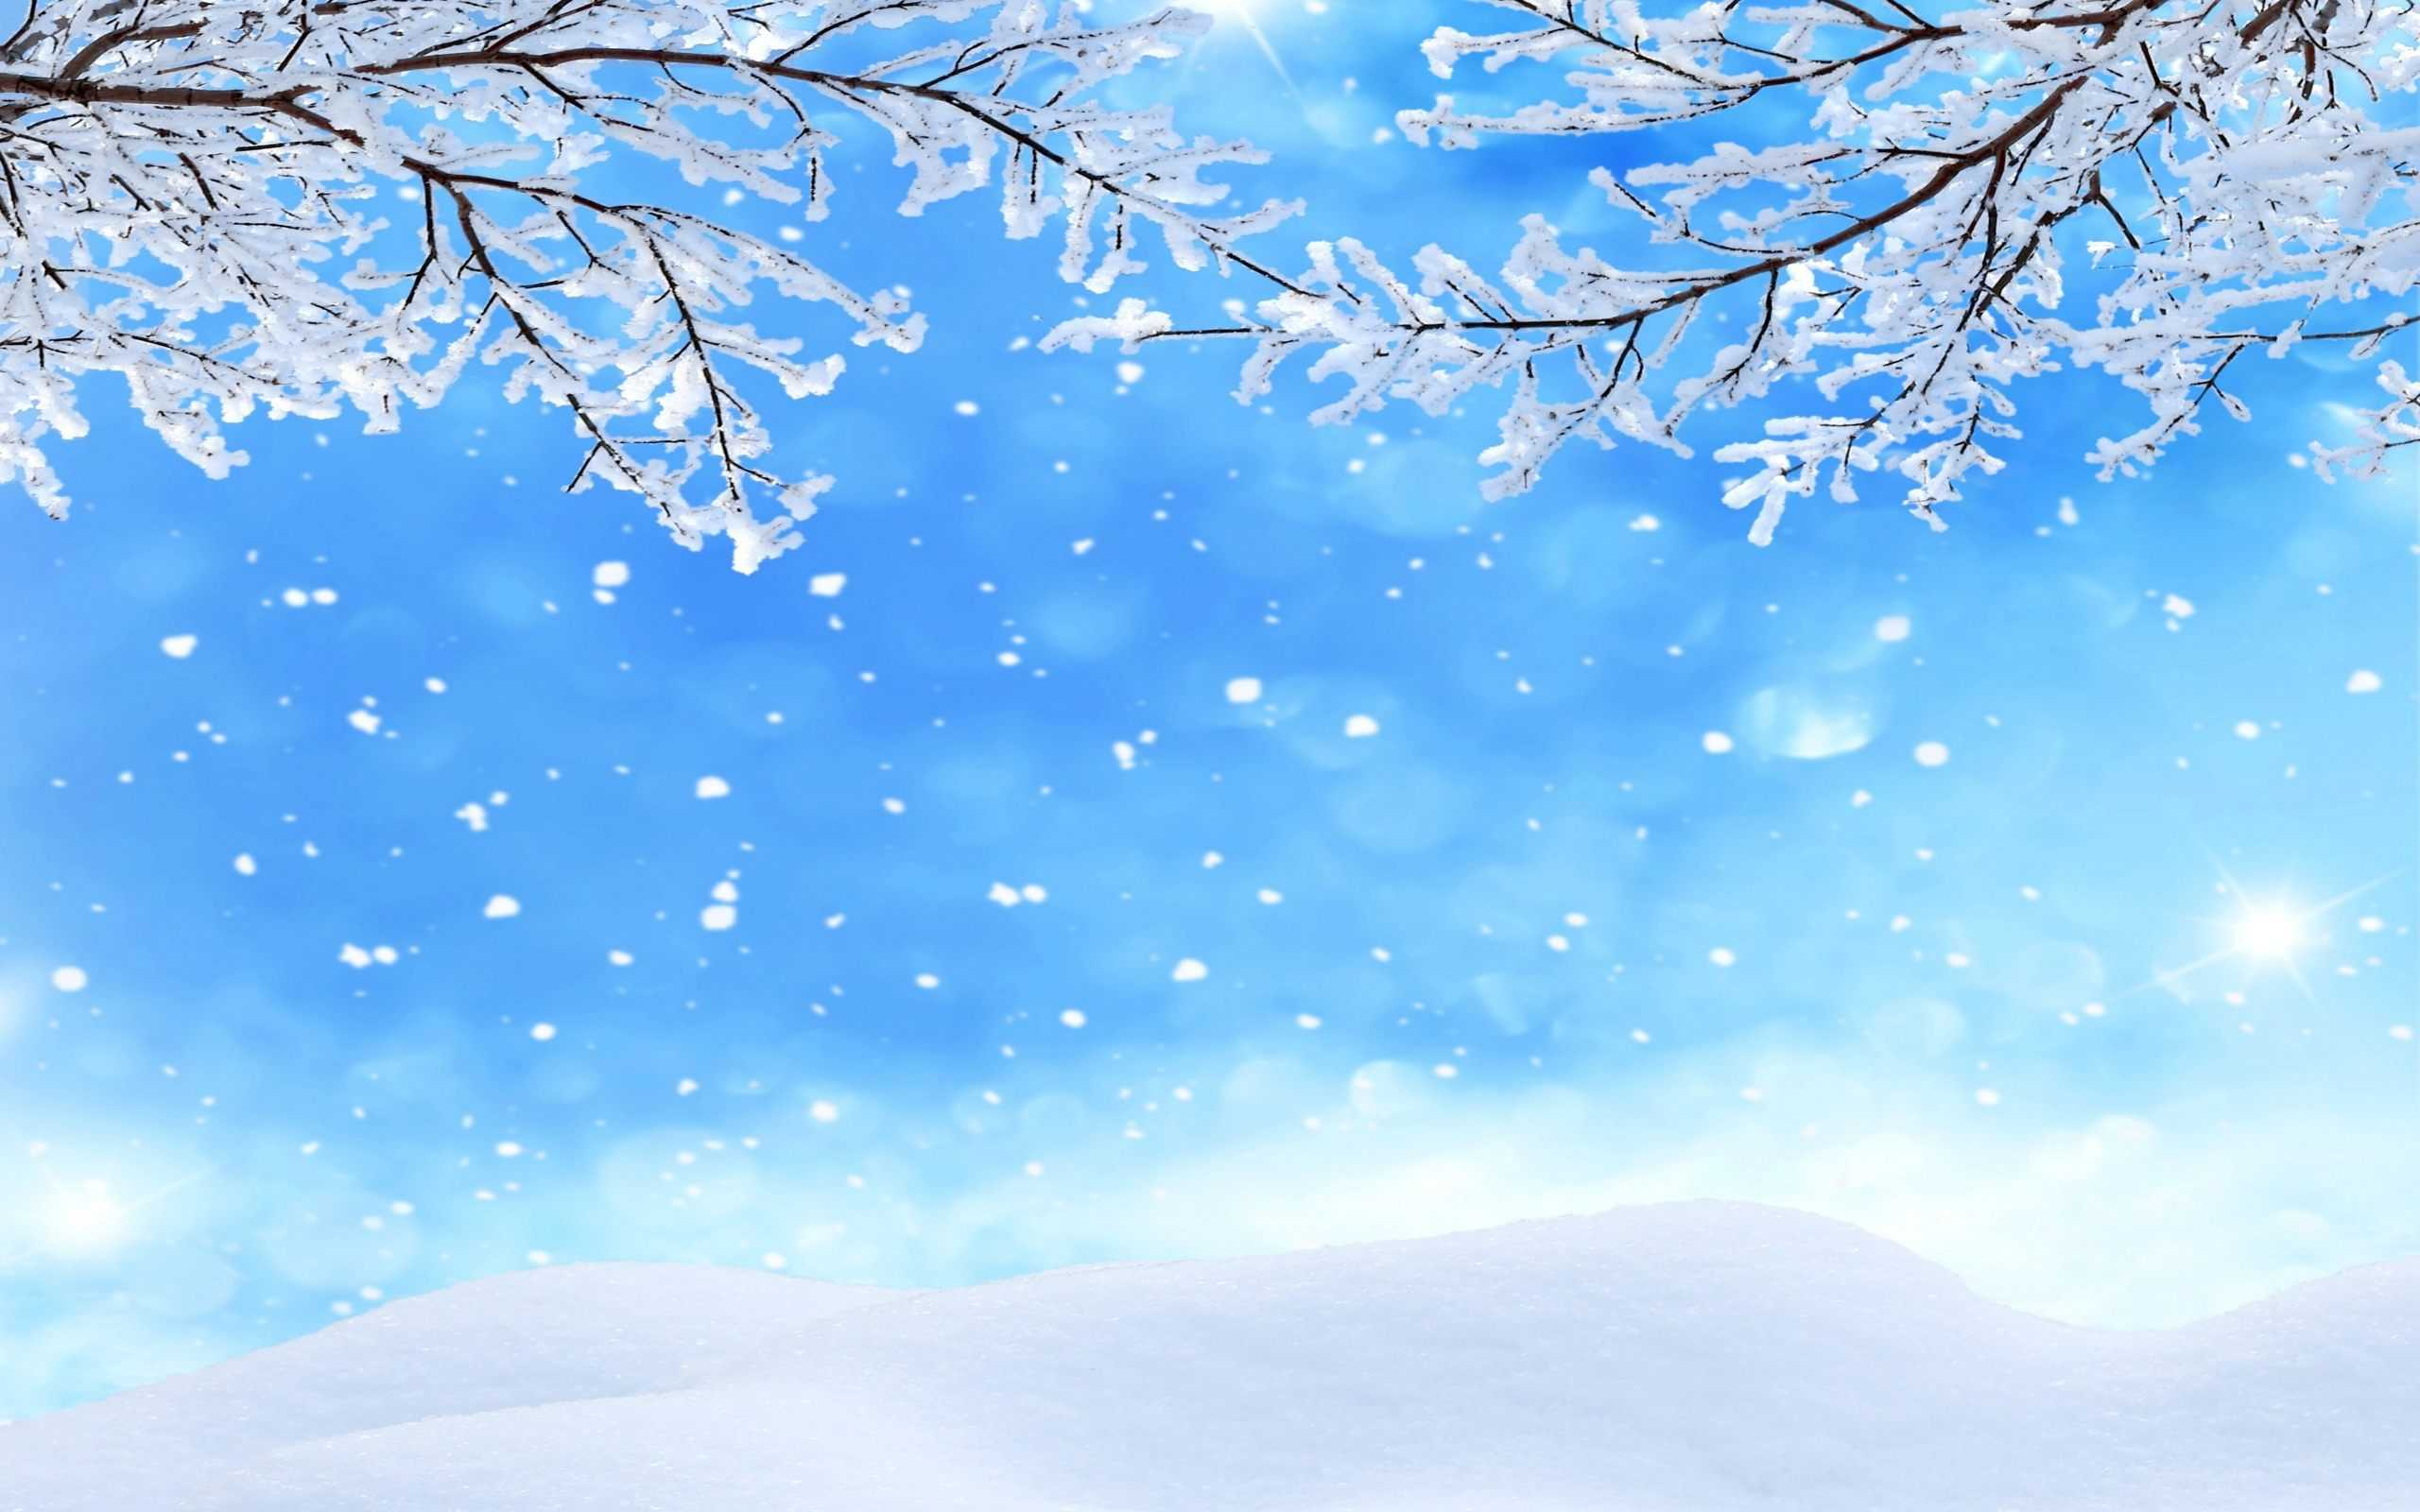 Winter Background Wallpaper Enjpg